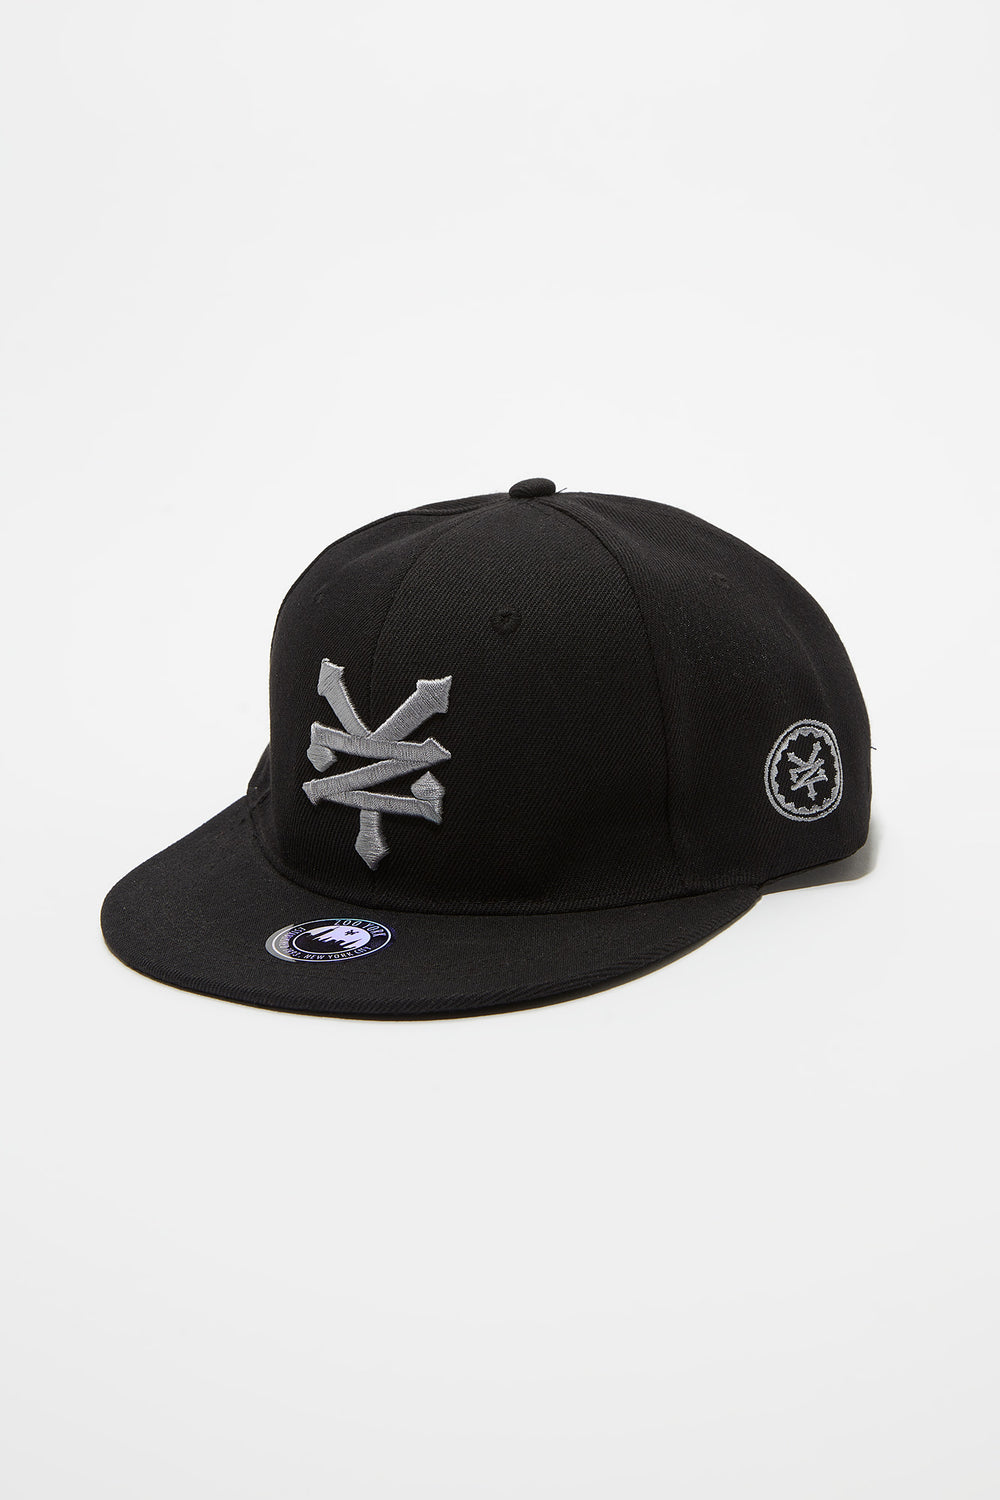 Zoo York Mens 2-Tone Snapback Black